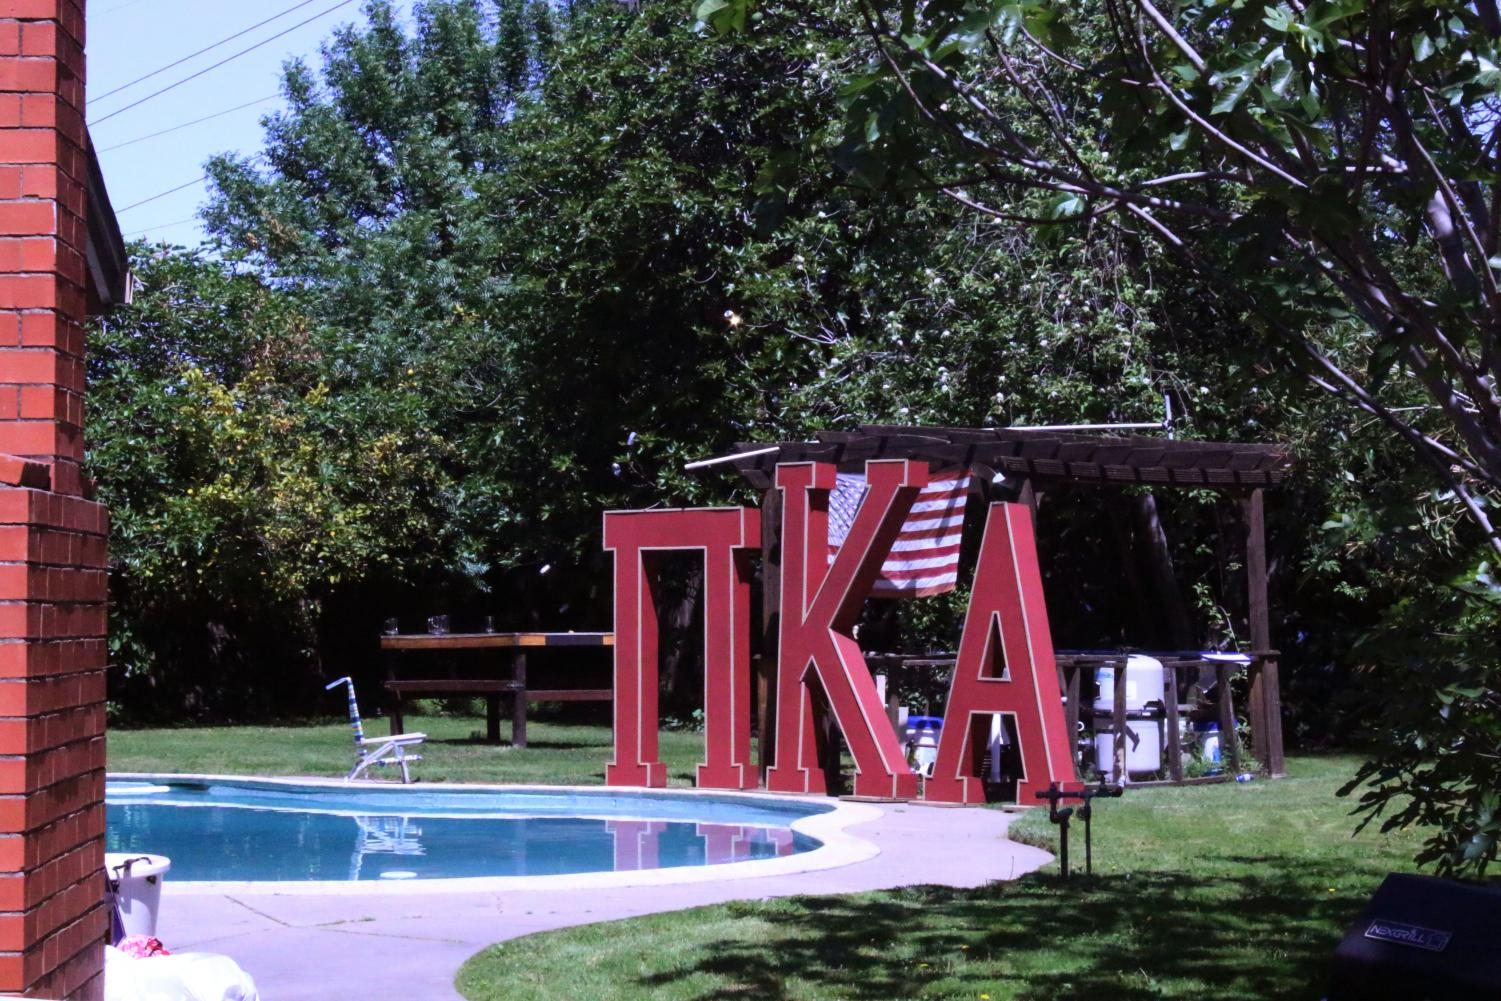 Large Greek letters are visible next to a backyard pool over the fence of the home where 21-year-old Sac State business major and Pi Kappa Alpha member William Molina died after being shot by a pellet gun Friday, April 12. Members of the university's chapter refer to the home as 'The Fratican.'